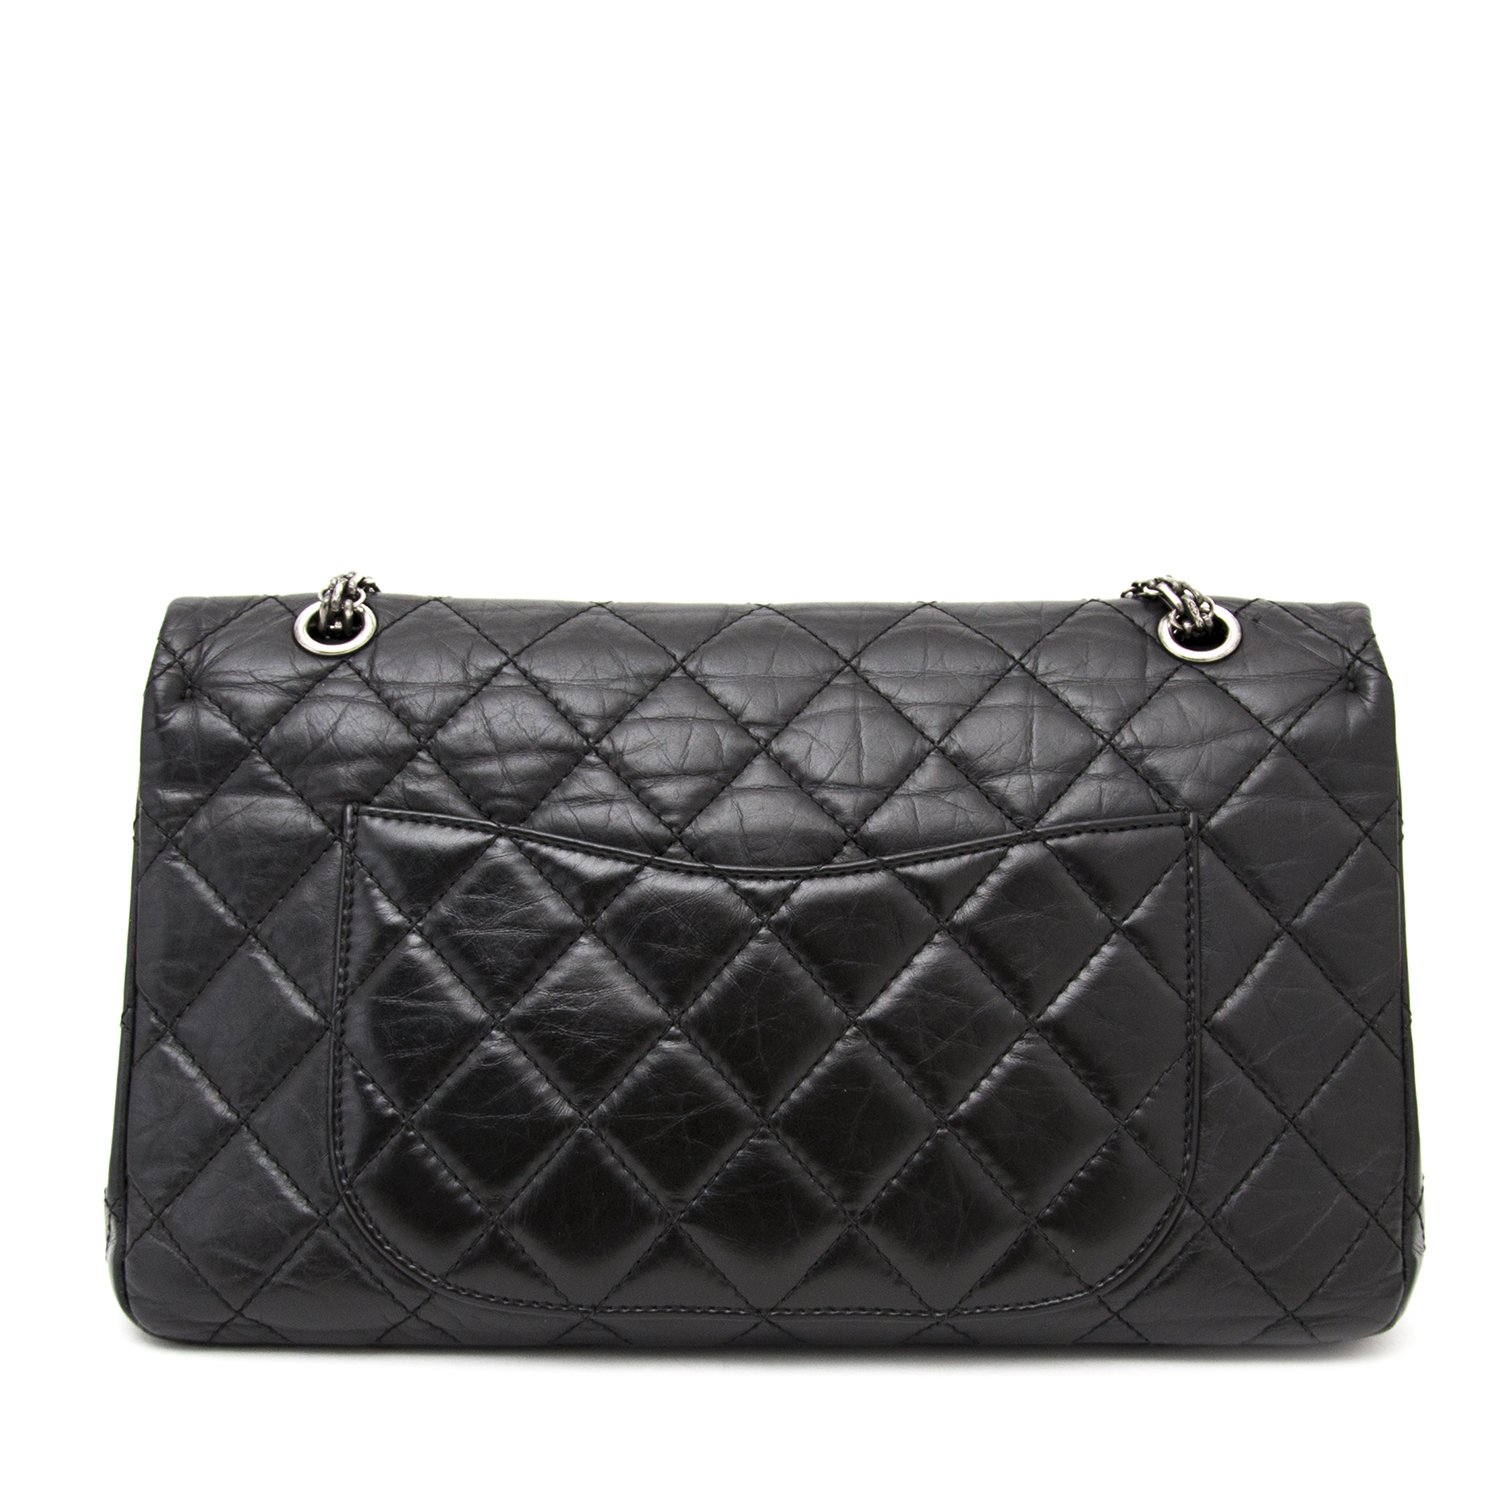 CHANEL Black Aged Calf 2.55 Reissue 227 in pristine condition available with worldwide shipping